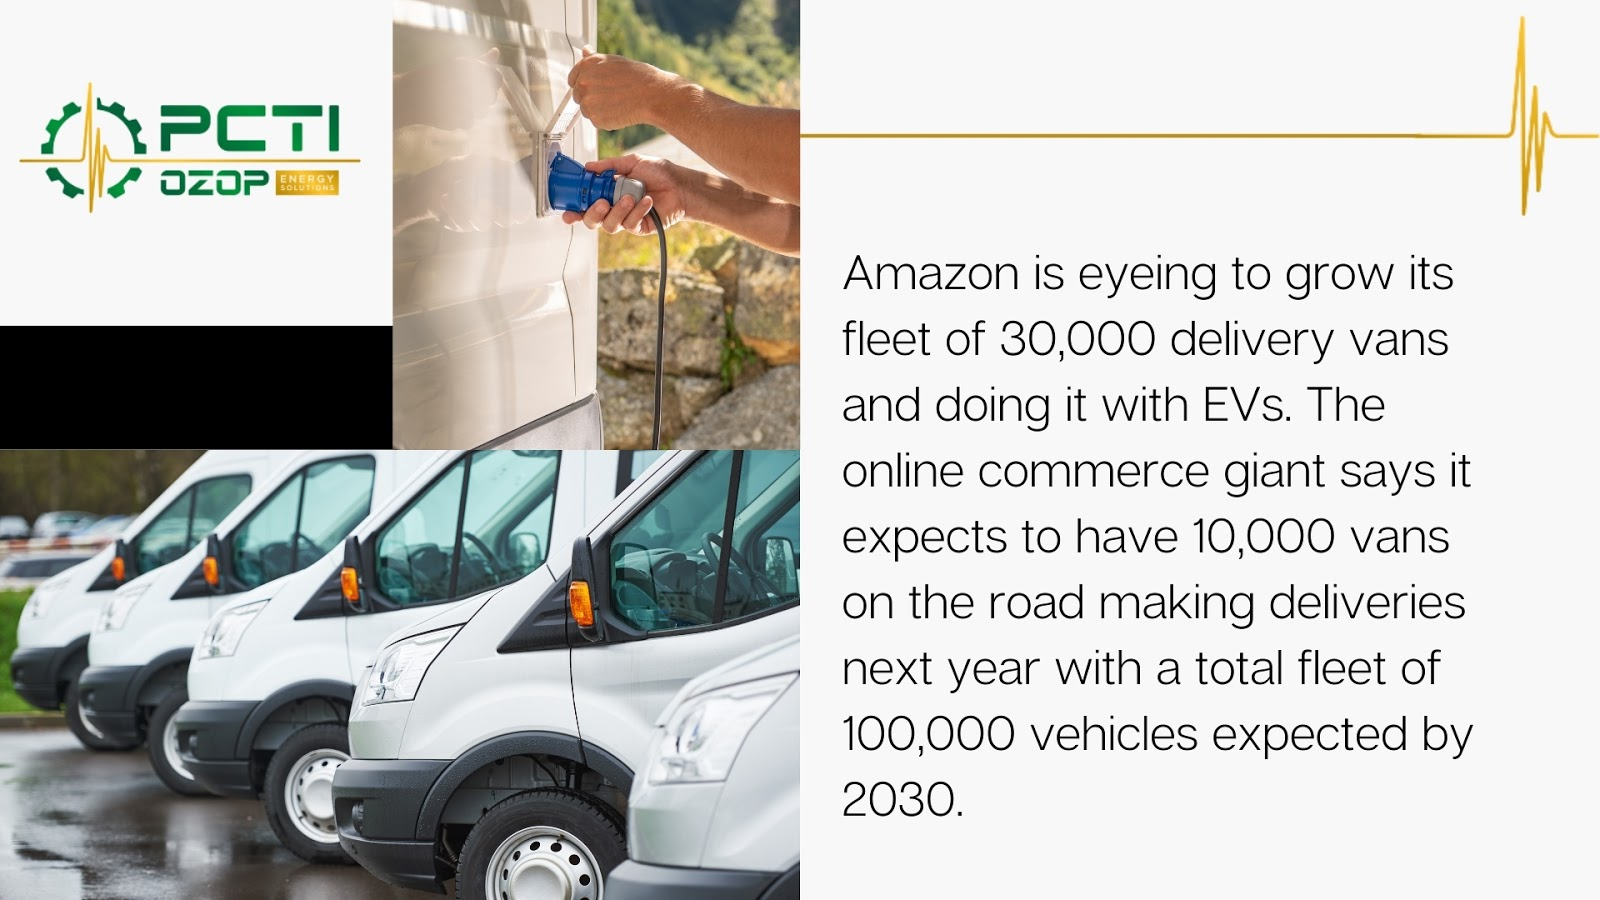 Amazon is eyeing to grow its fleet of 30,000 delivery vans and doing it with EVs